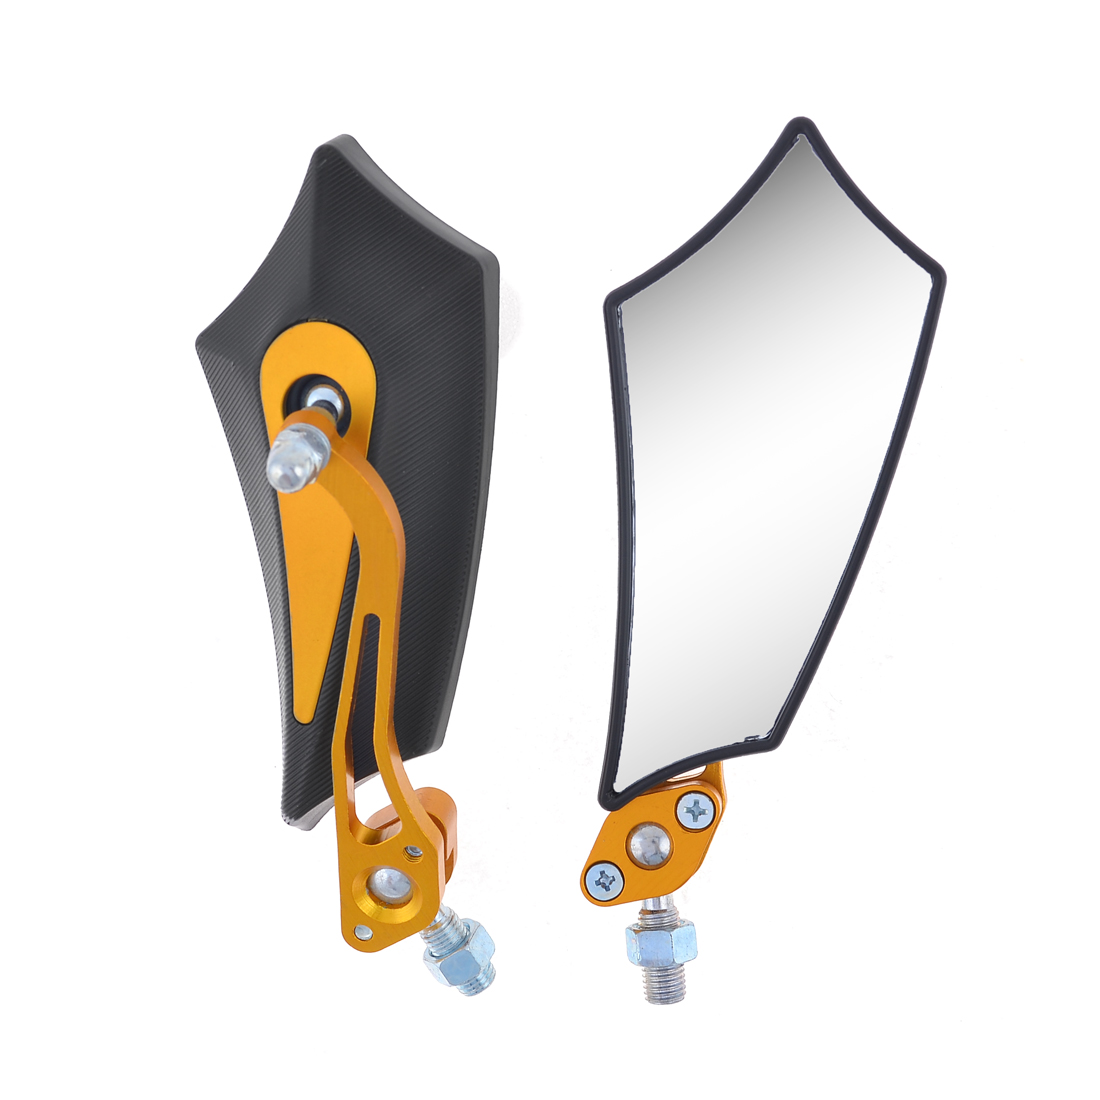 2 Pcs Black Gold Tone Irregular Quadrilateral Shape Motorcycle Rearview Mirror